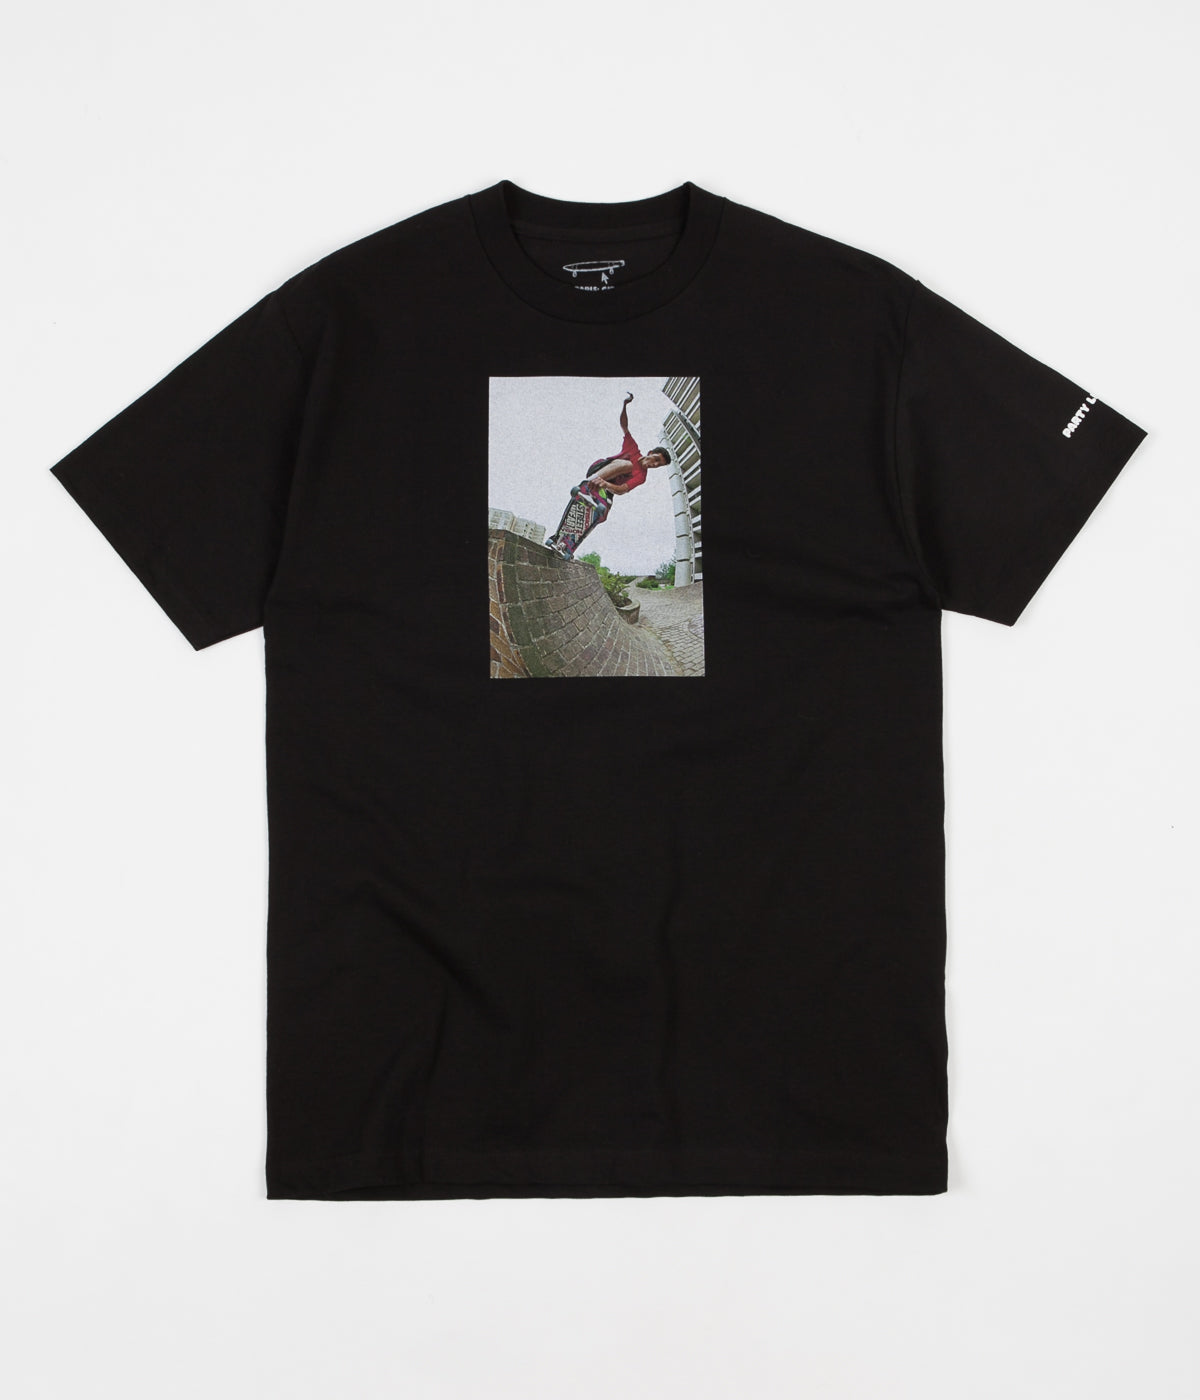 Crailtap Gonz 80's Party T-Shirt - Black